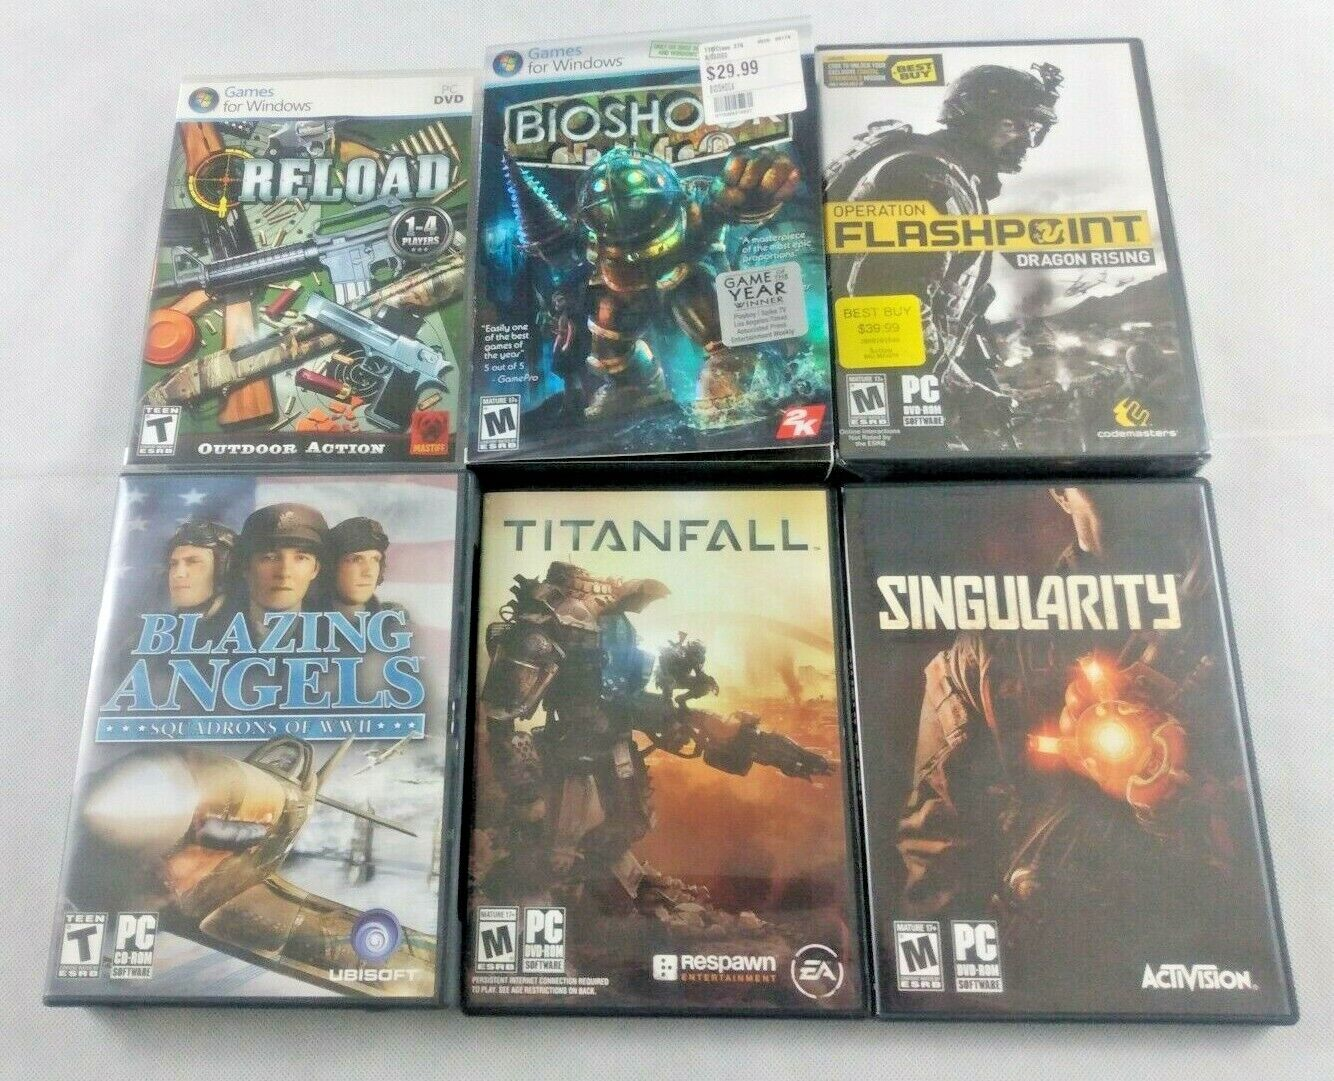 Computer Games - Lot Of 6 PC Computer Games Tested Working Bioshock Titanfall Reload Singularity